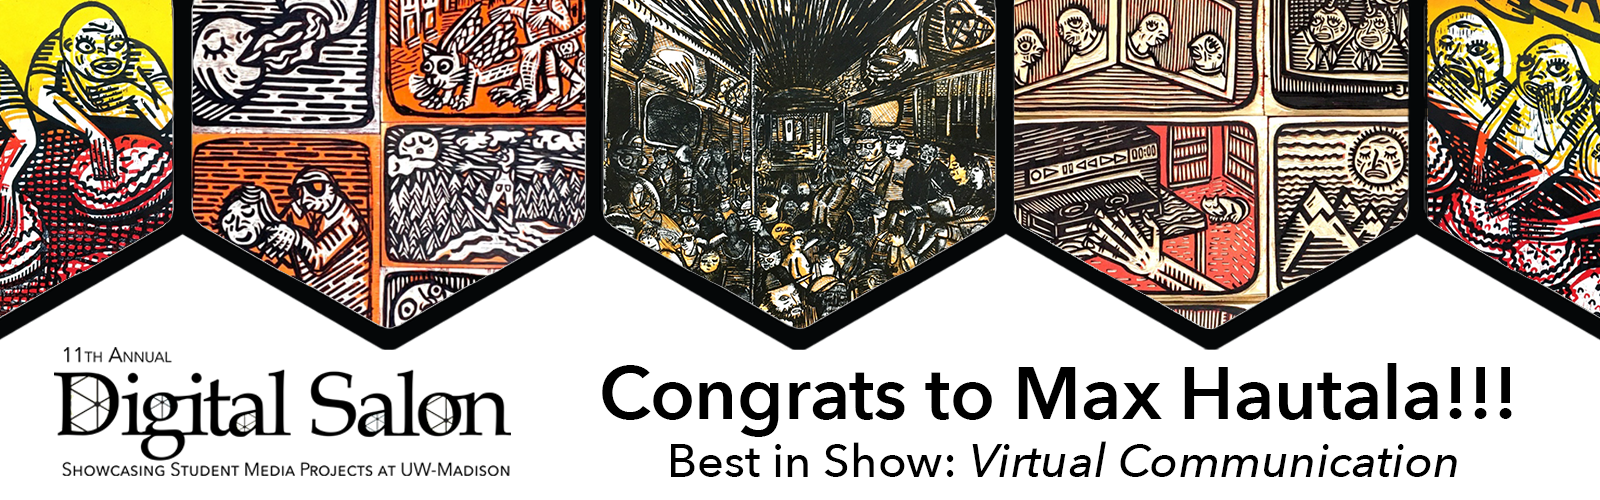 Congratulations to Max Hautala, Best in Show Award Winner for his project Virtual Communication